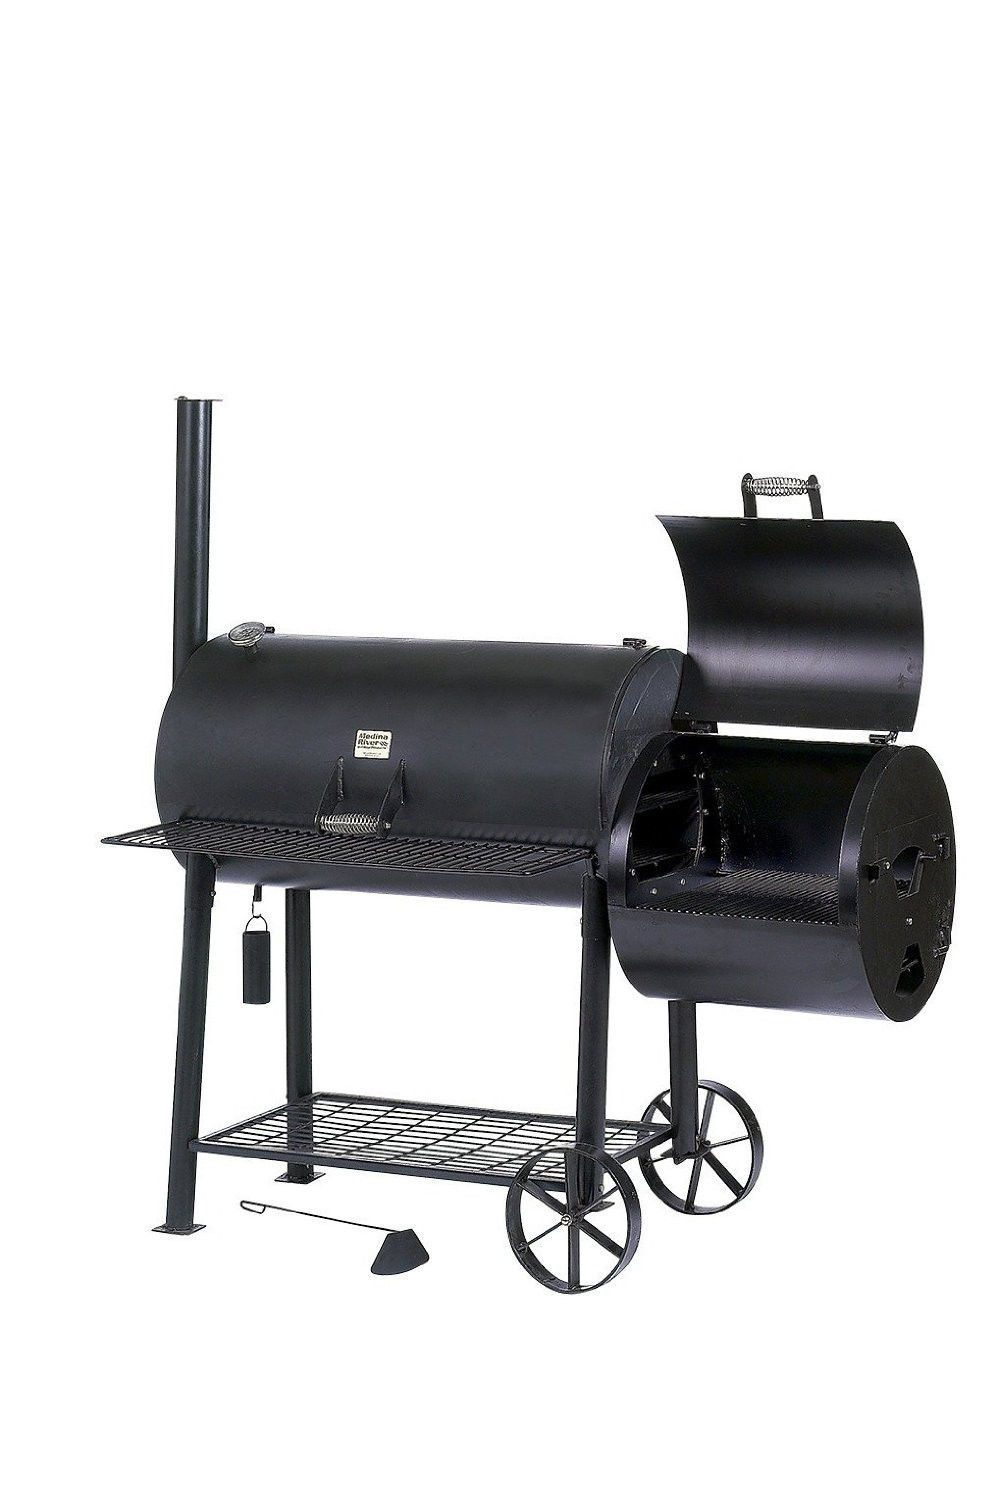 New Jumbo Charcoal Smoker Grill Combo w Side Box, Patio BBQ Cooking Stove Garden